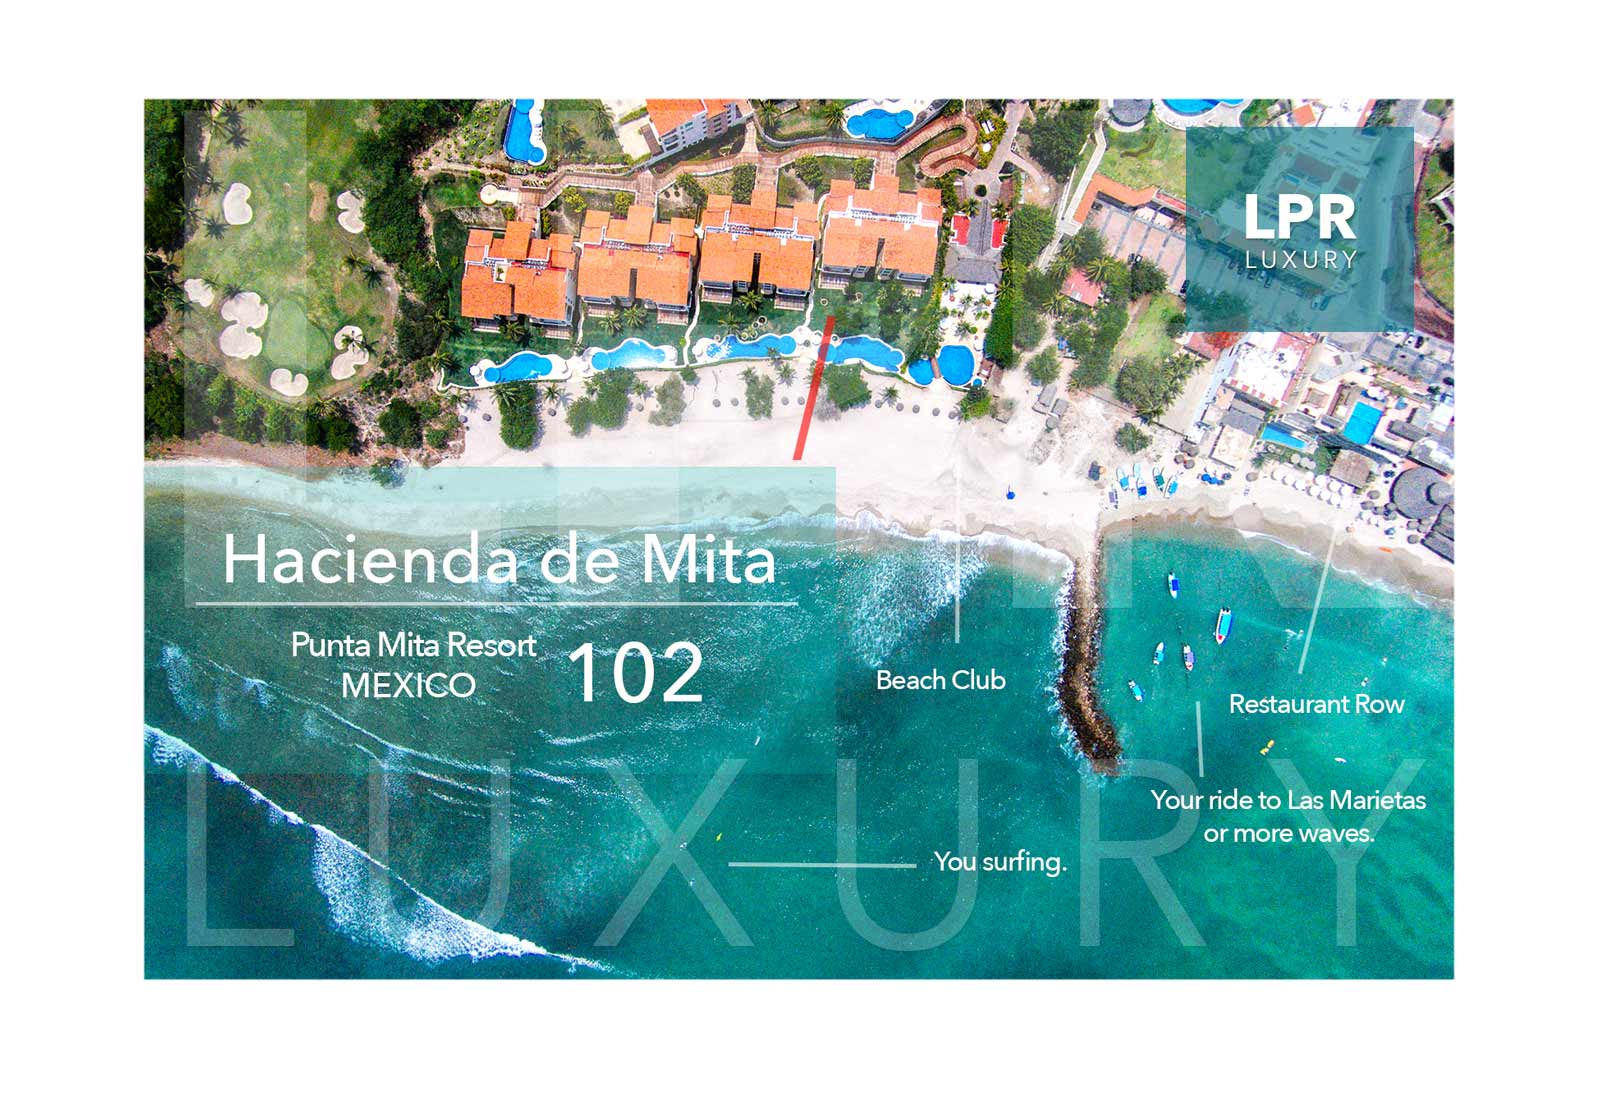 Hacienda de Mita 102 - Luxury Punta Mita Resort condo fro sale and rent - Riviera Nayarit, Mexico